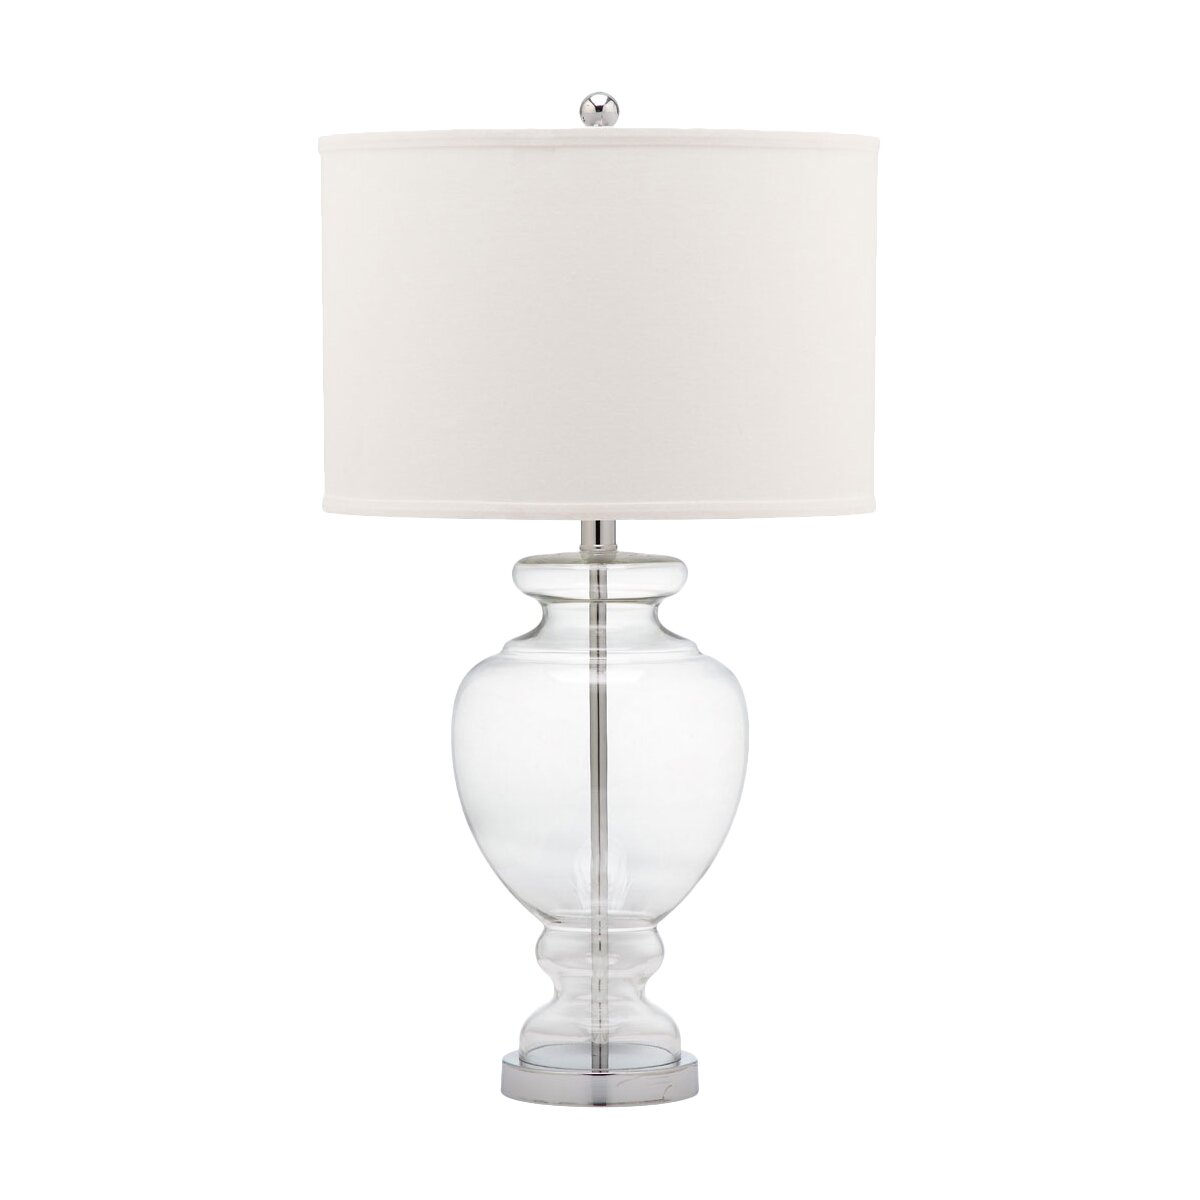 Varick Gallery Snediker 28 Quot H Table Lamp With Drum Shade